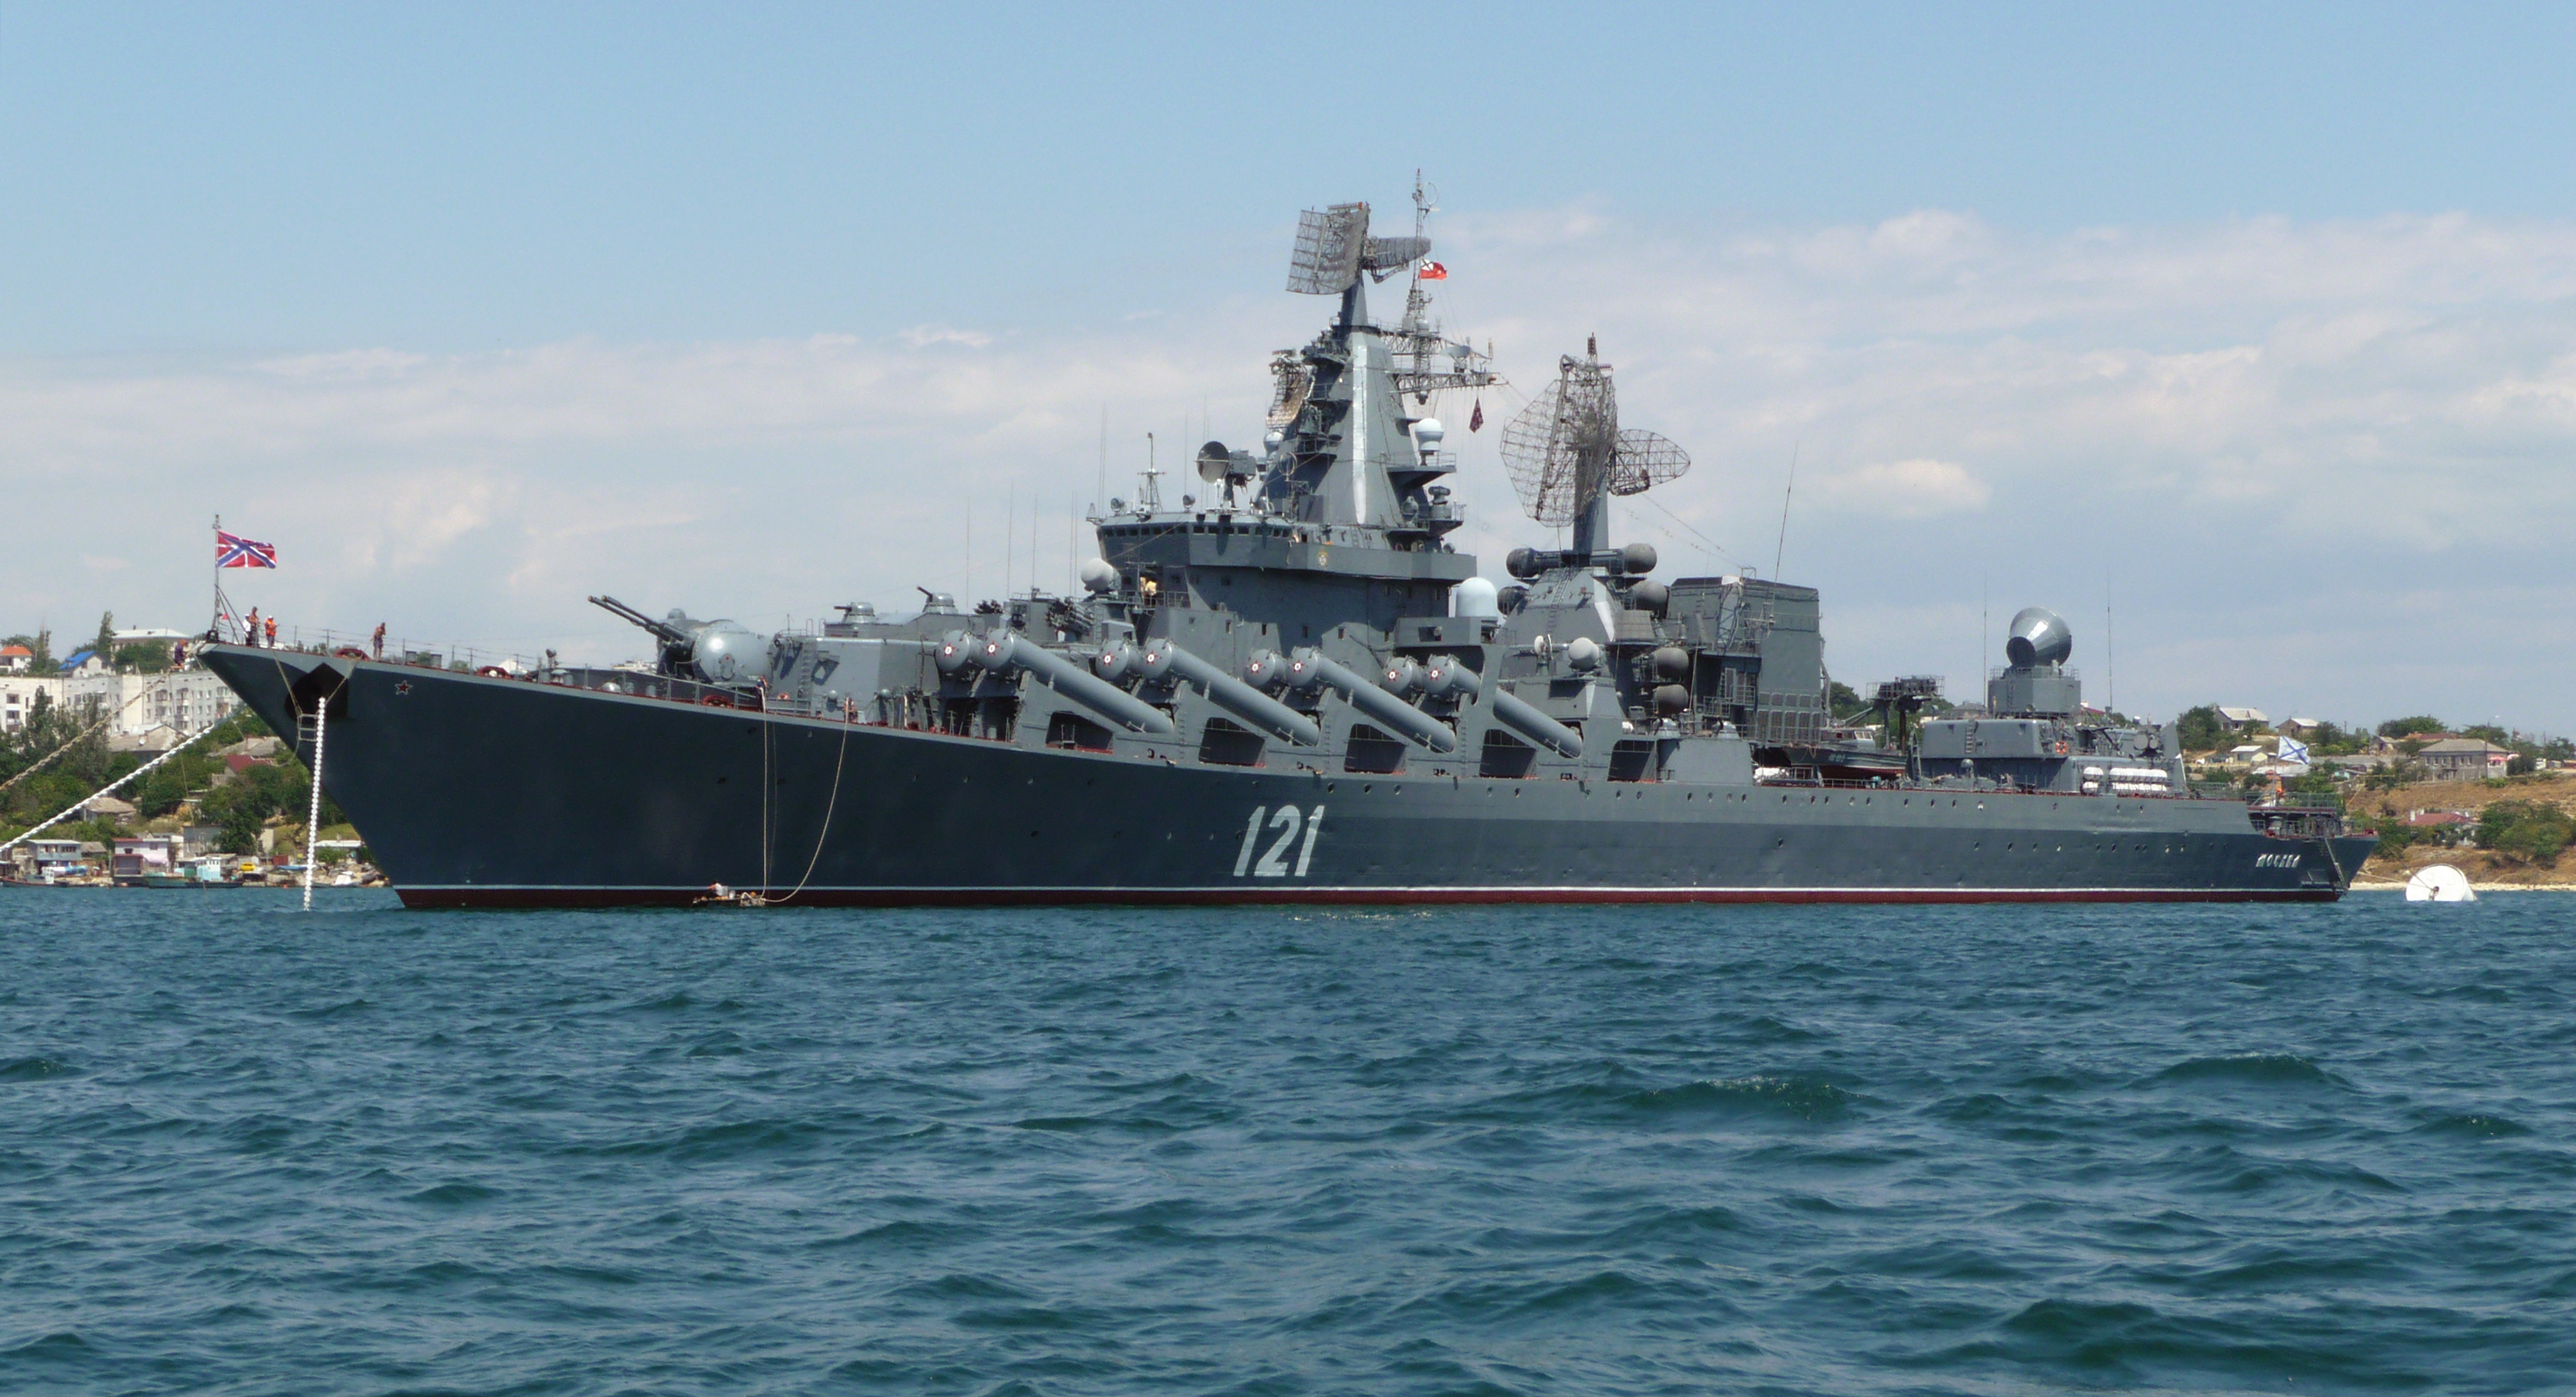 File:Project 1164 Moskva 2009 G1.jpg